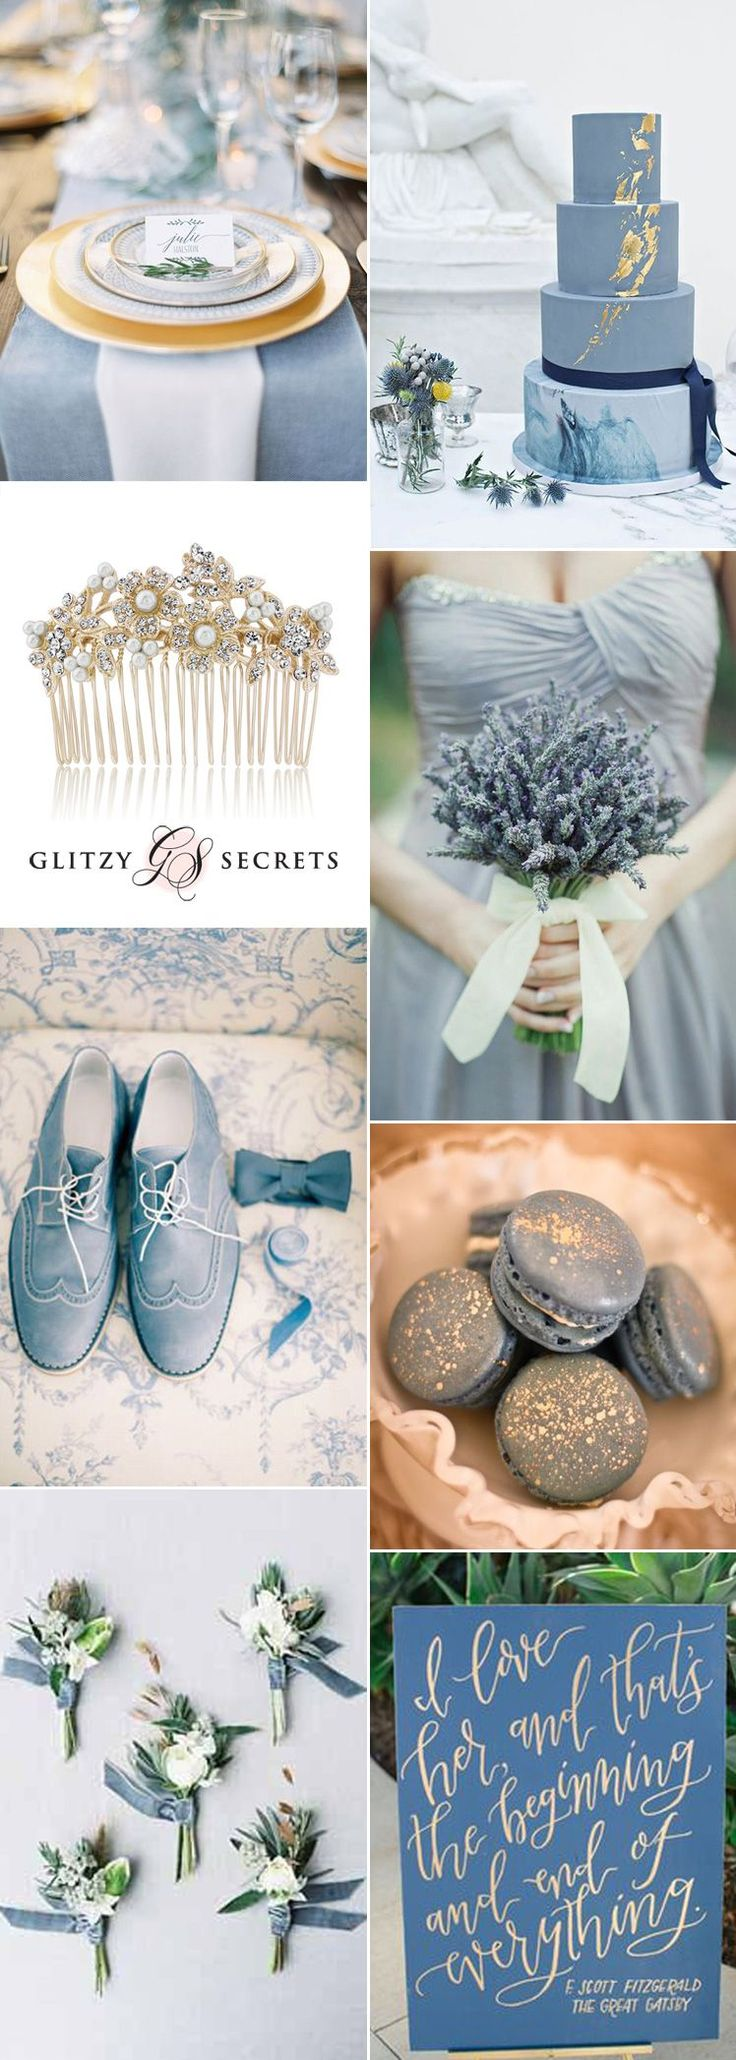 Fabulous dusky blue and antique gold wedding ideas can be a fresh and unique take on a cool autumn color scheme